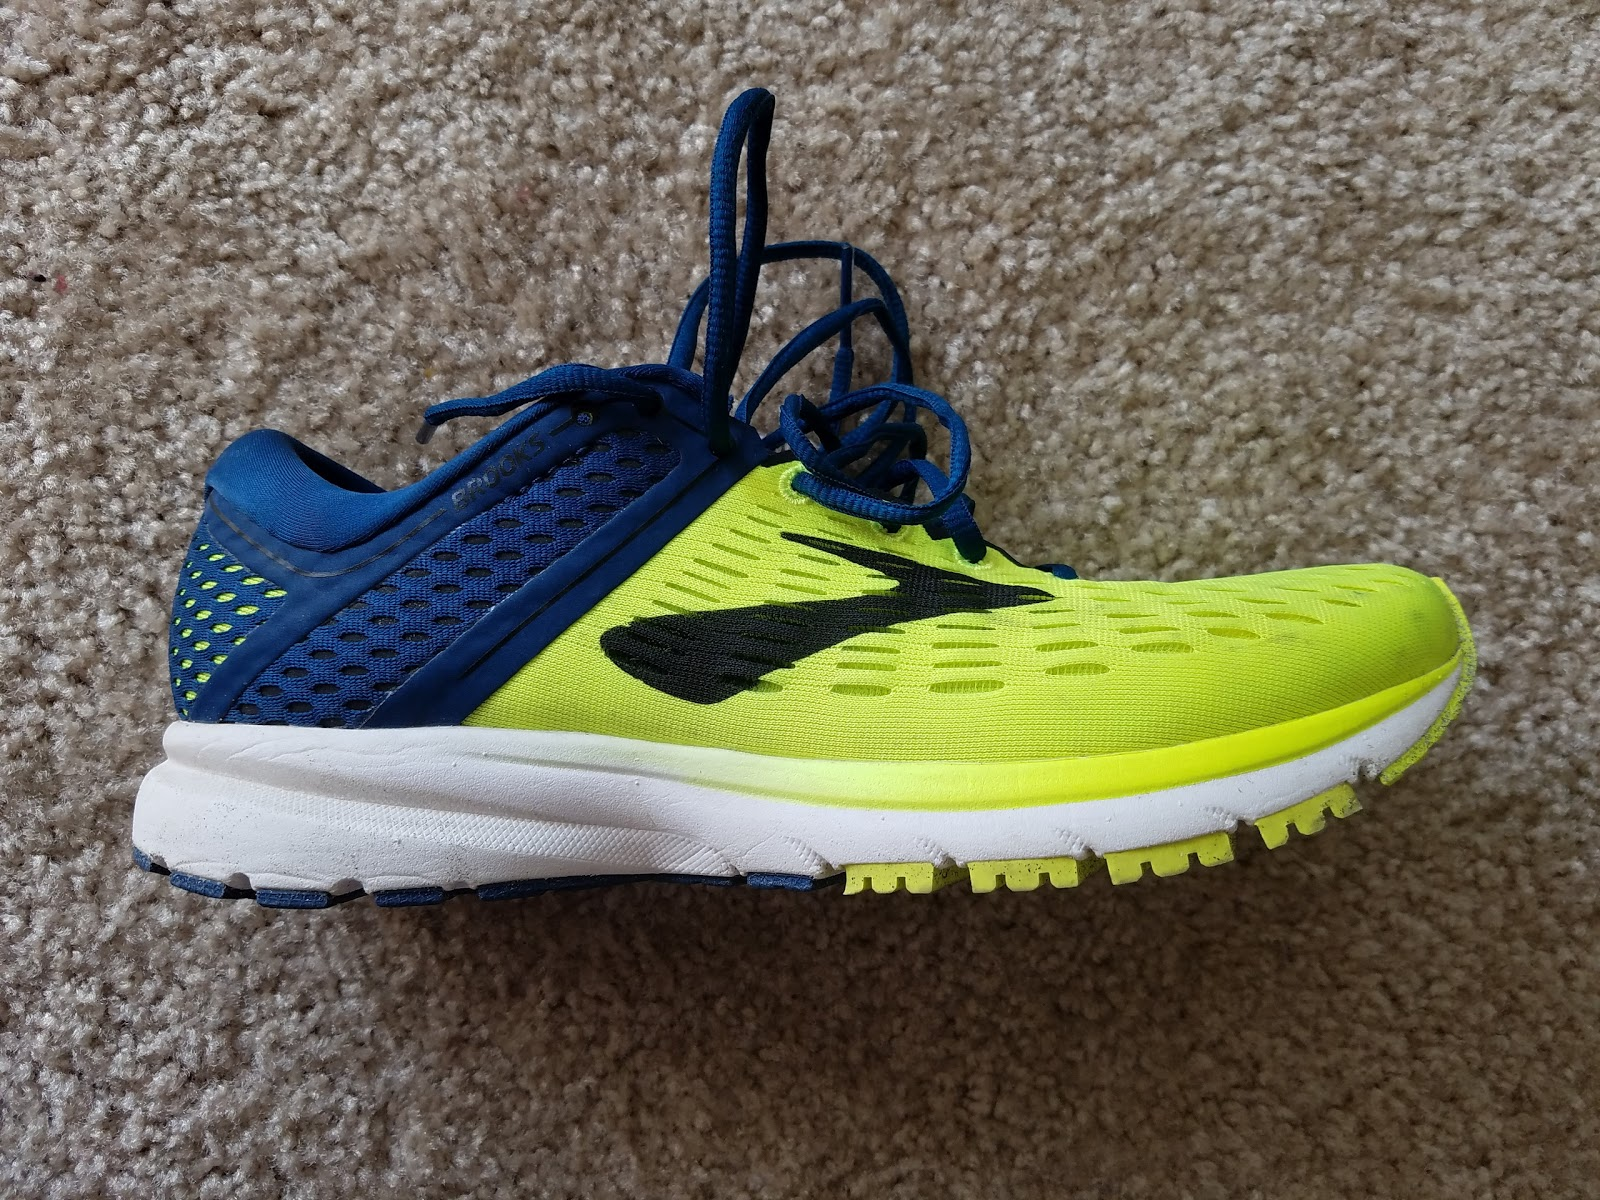 d7d49956303 Road Trail Run  Brooks Running Ravenna 9 Review  Neutral Runner ...